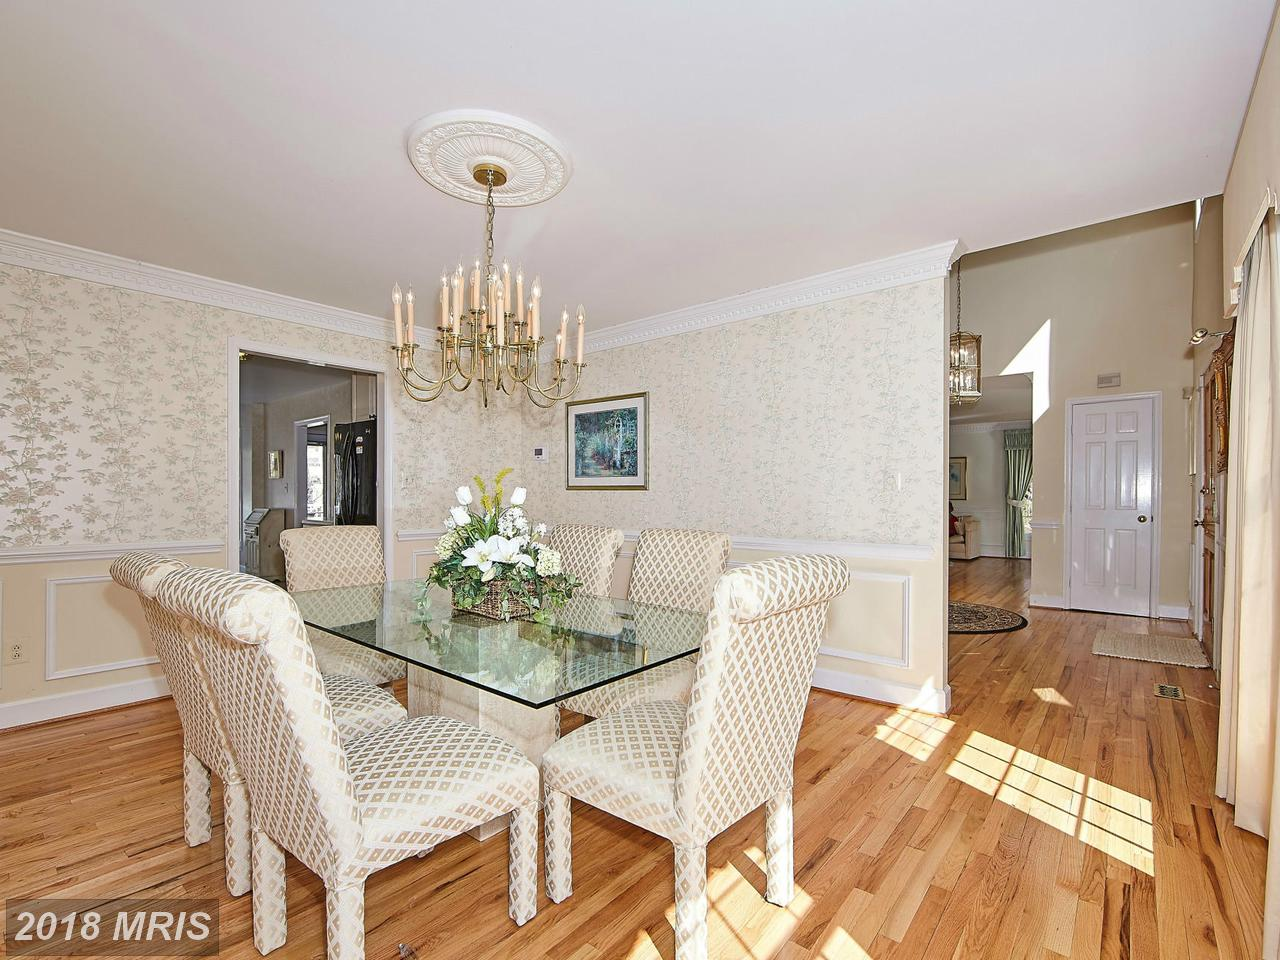 Additional photo for property listing at Colonial, Detached - POTOMAC, MD 10505 WHITE CLOVER TER Potomac, Maryland,20854 États-Unis